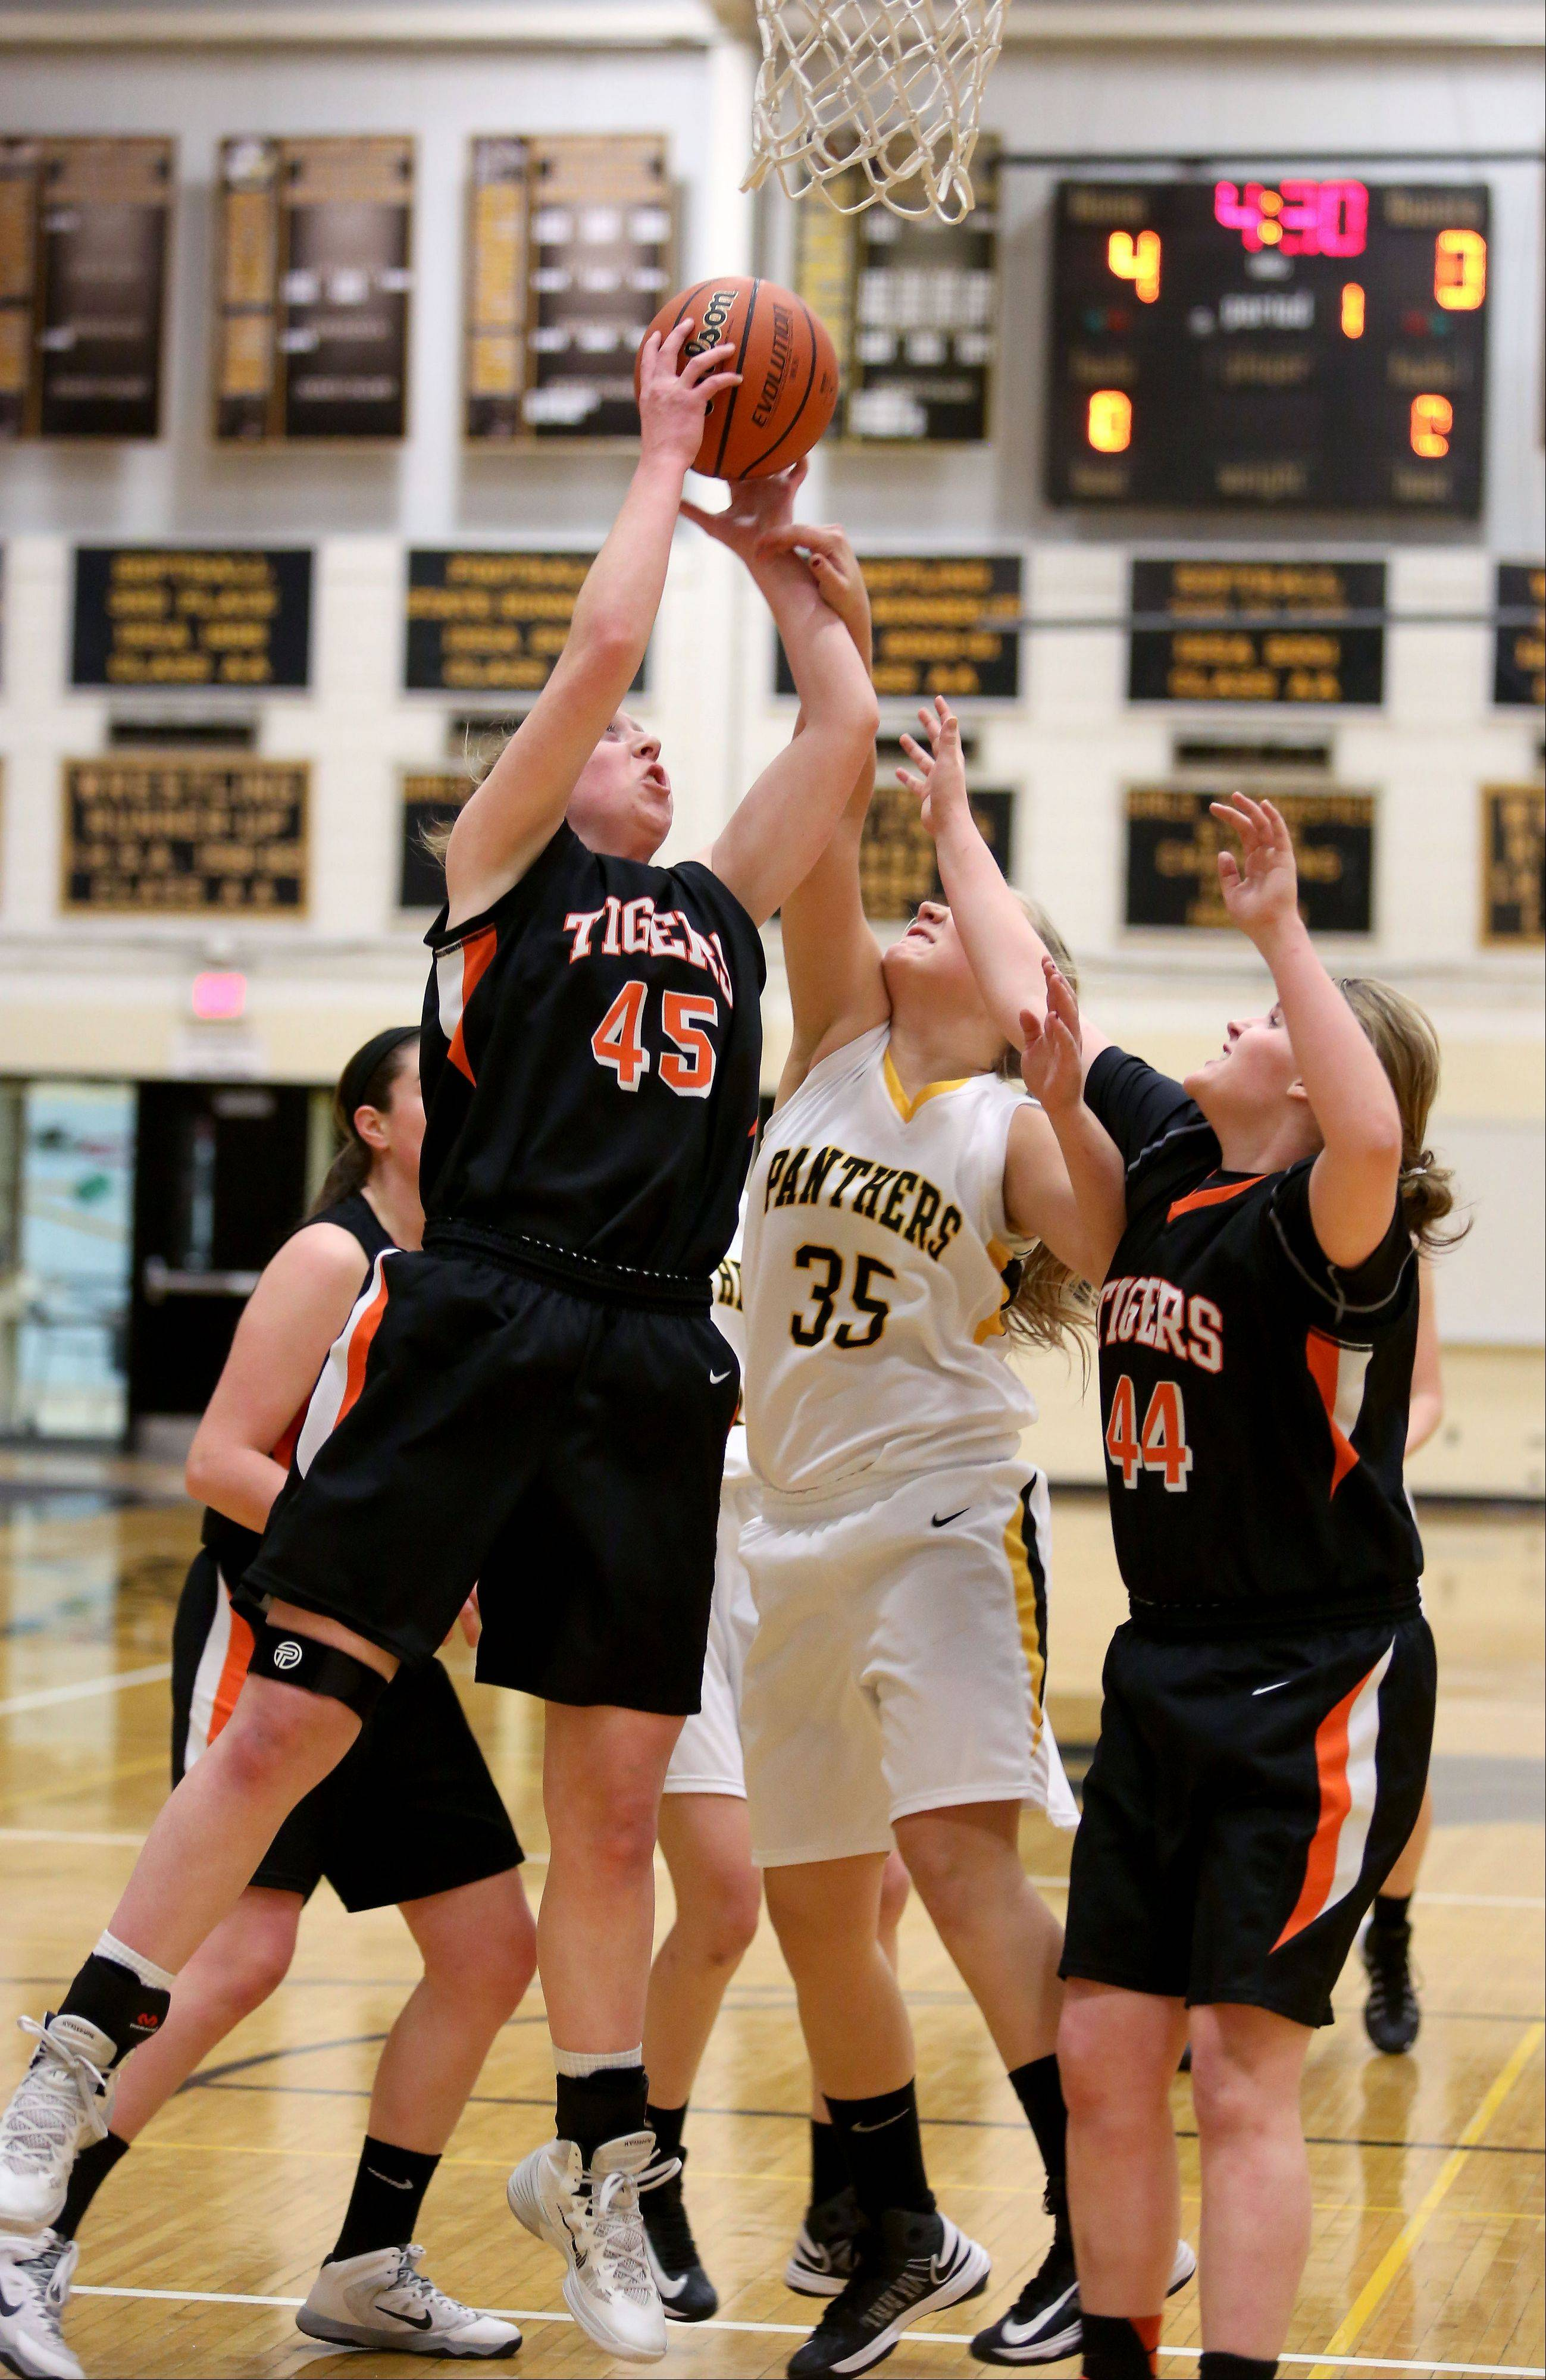 Wheaton Warrenville South's Meghan Waldron, left, gets the rebound from Samantha Yocum of Glenbard North.